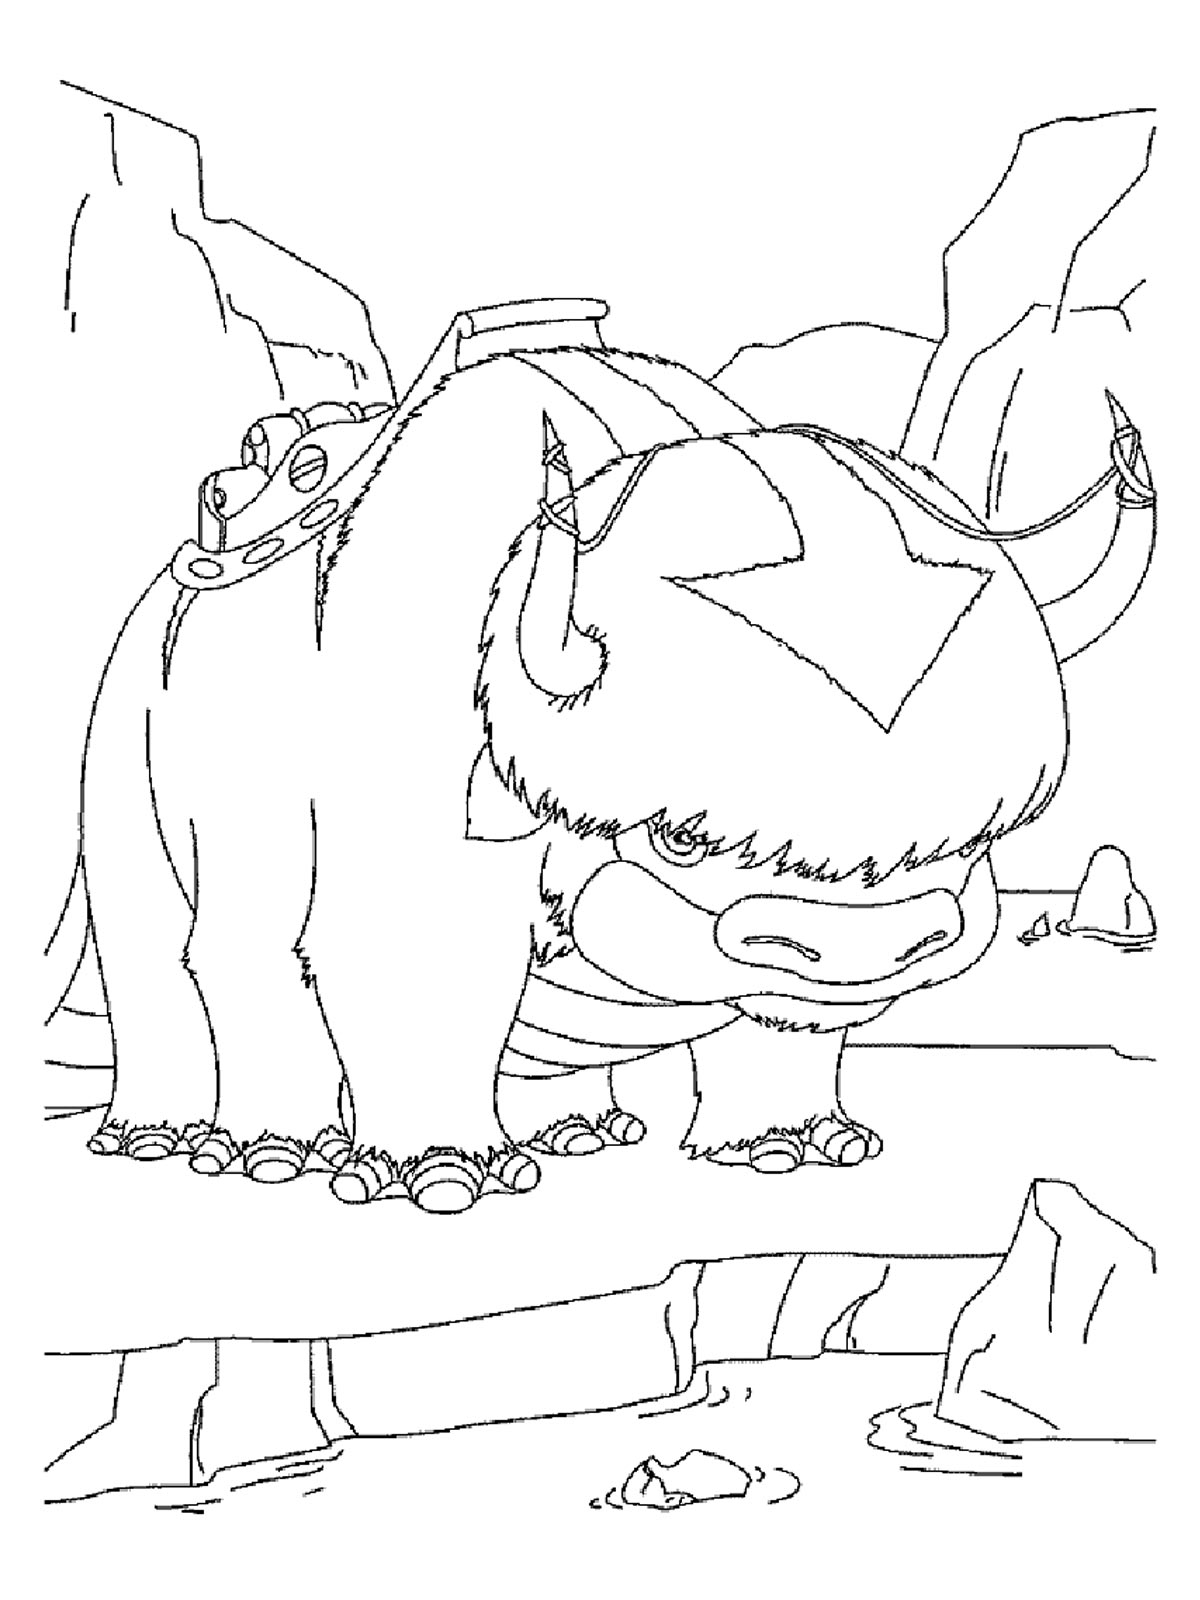 Appa And Momo Avatar Coloring Pages | dExa Byte Free Printable Kids ...